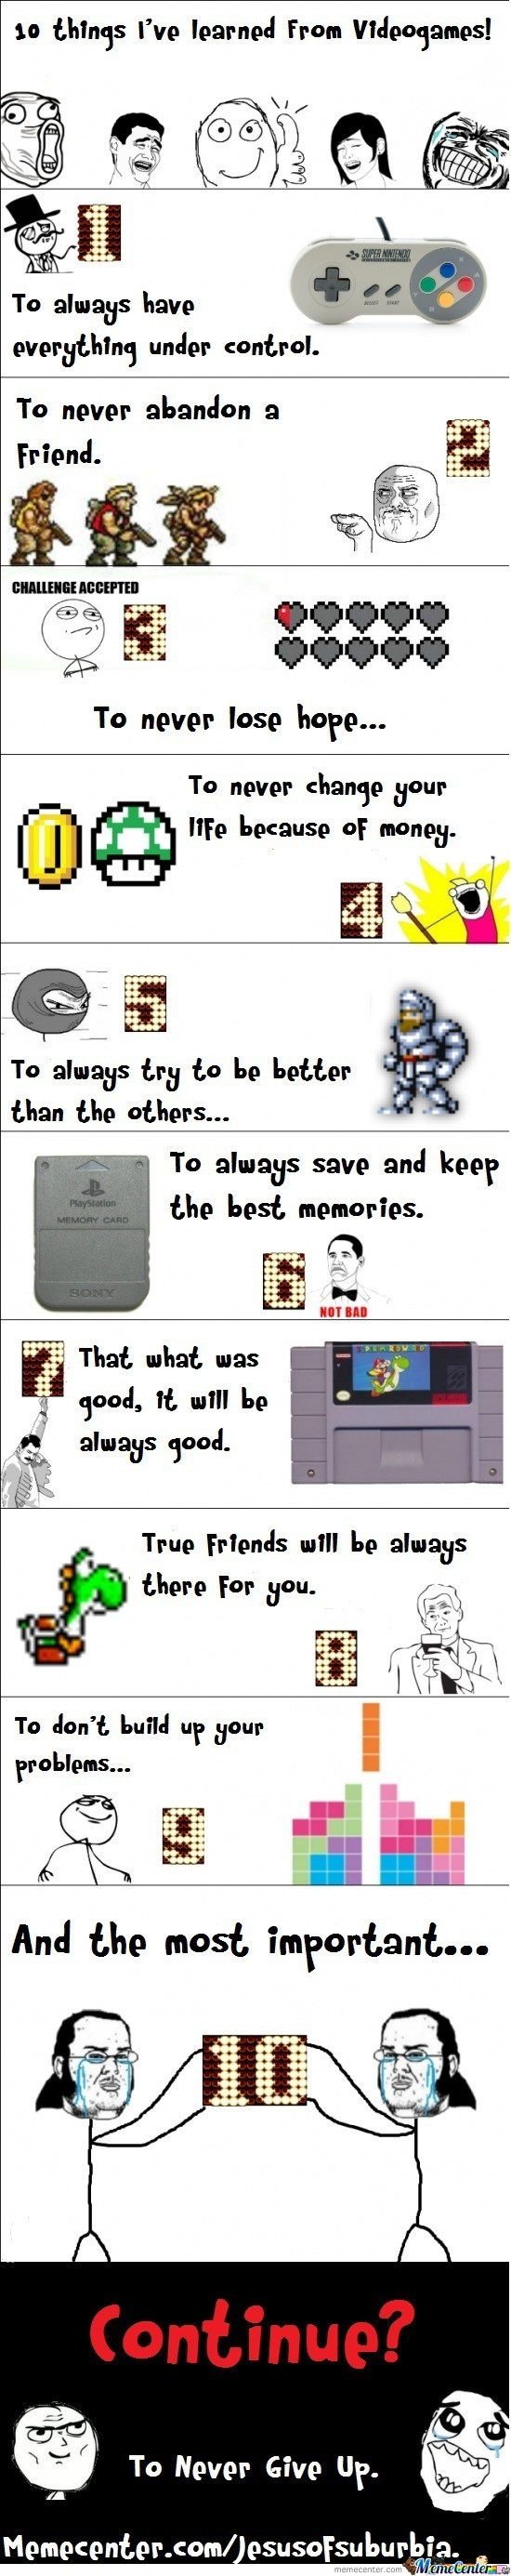 10 Things I've Learned From Videogames